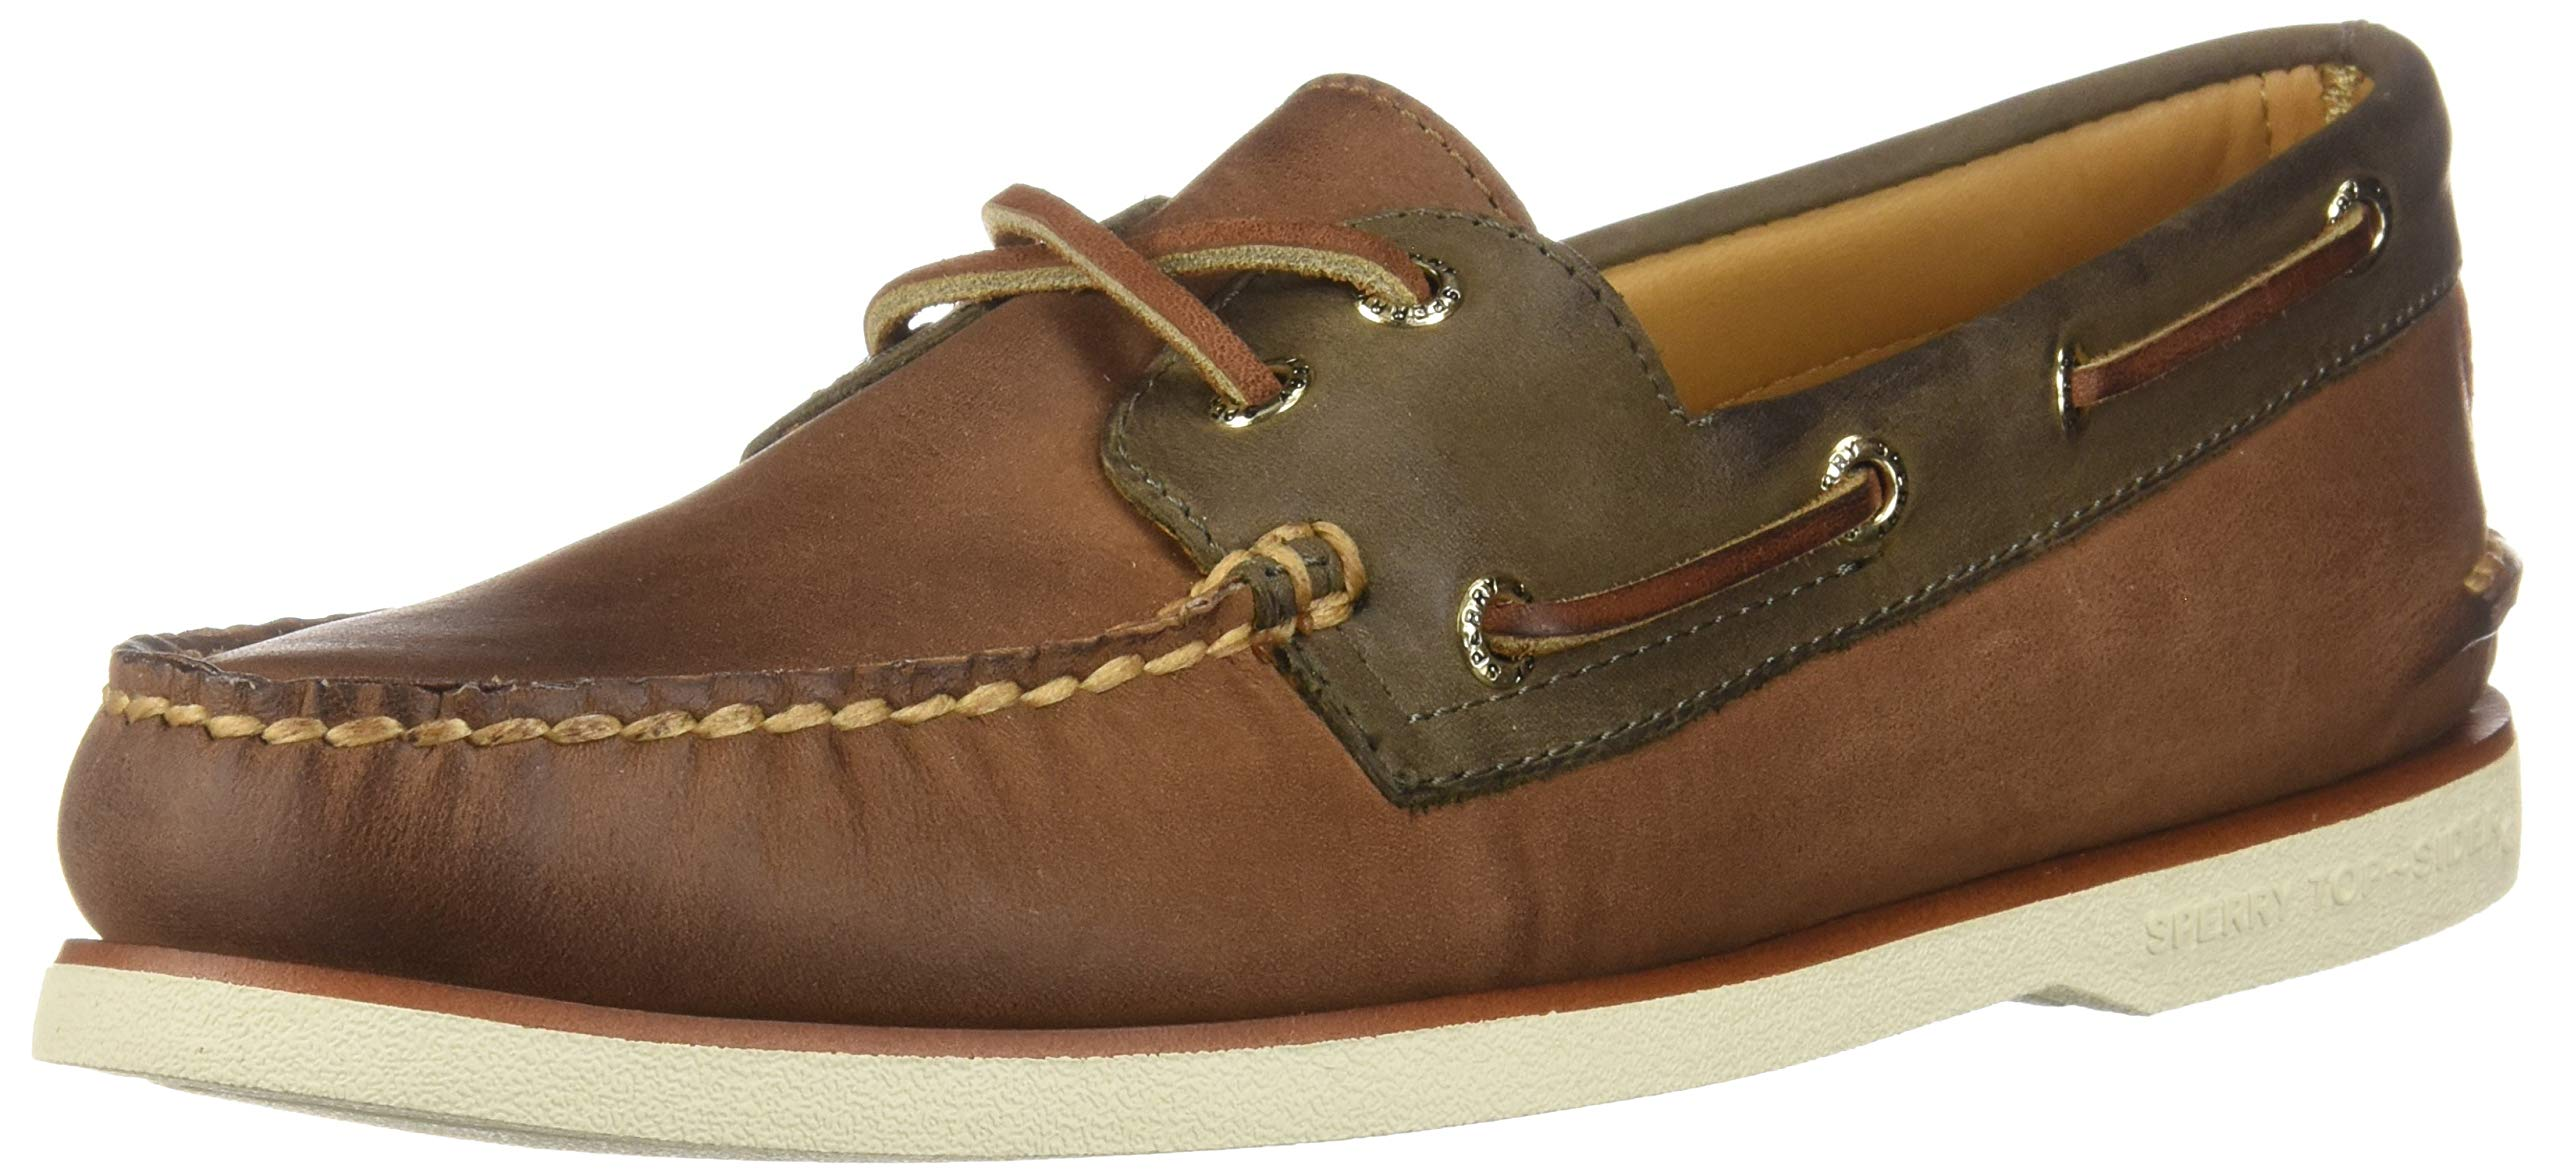 Sperry Mens Gold Cup Authentic Original Chevre Boat Shoe Brown/Olive 9.5 M